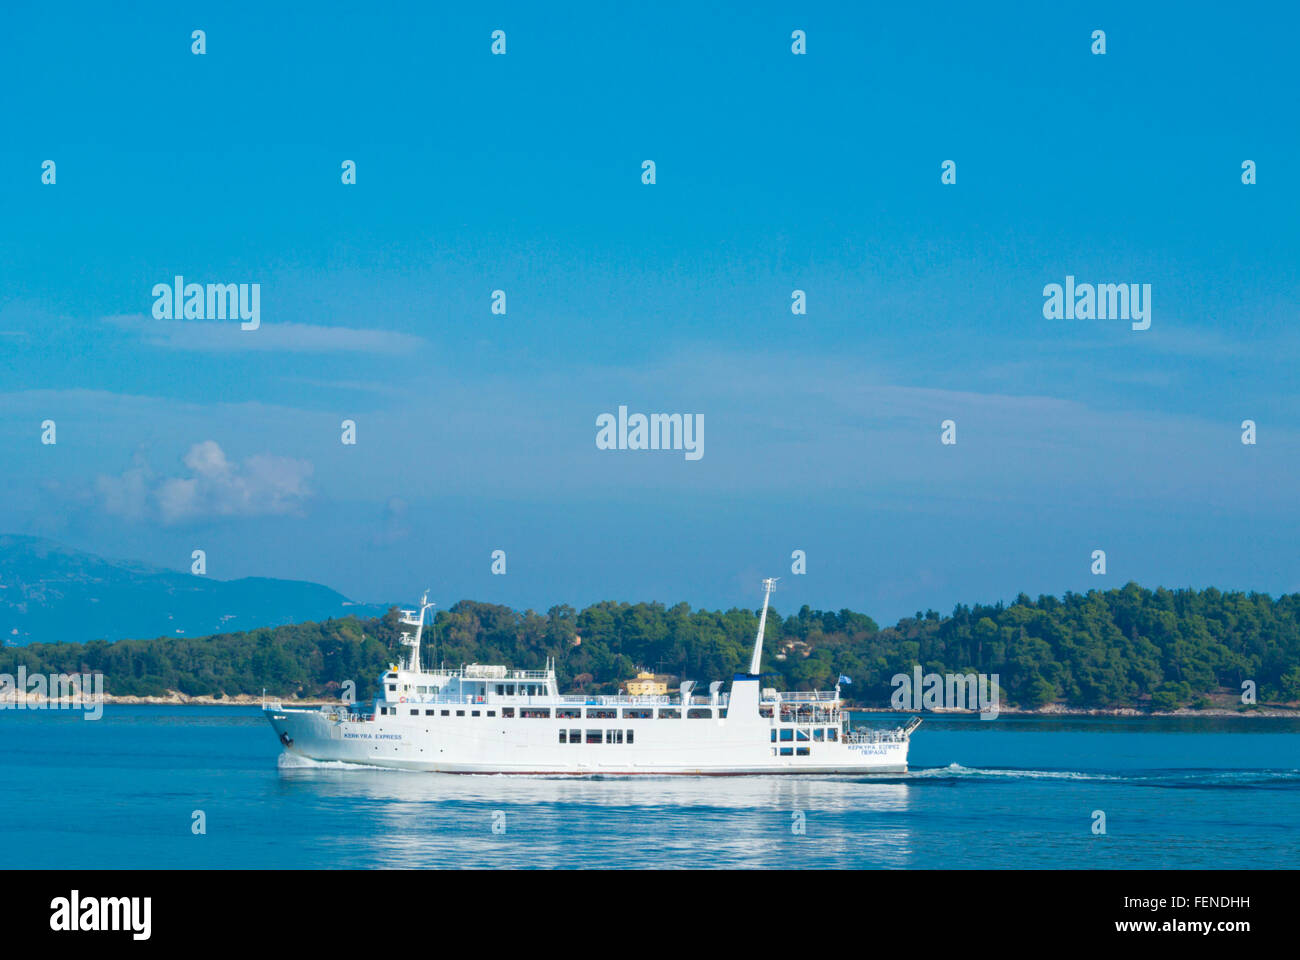 Small boat between Corfu and Vido, in front of Corfu town, Ionian islands, Greece - Stock Image